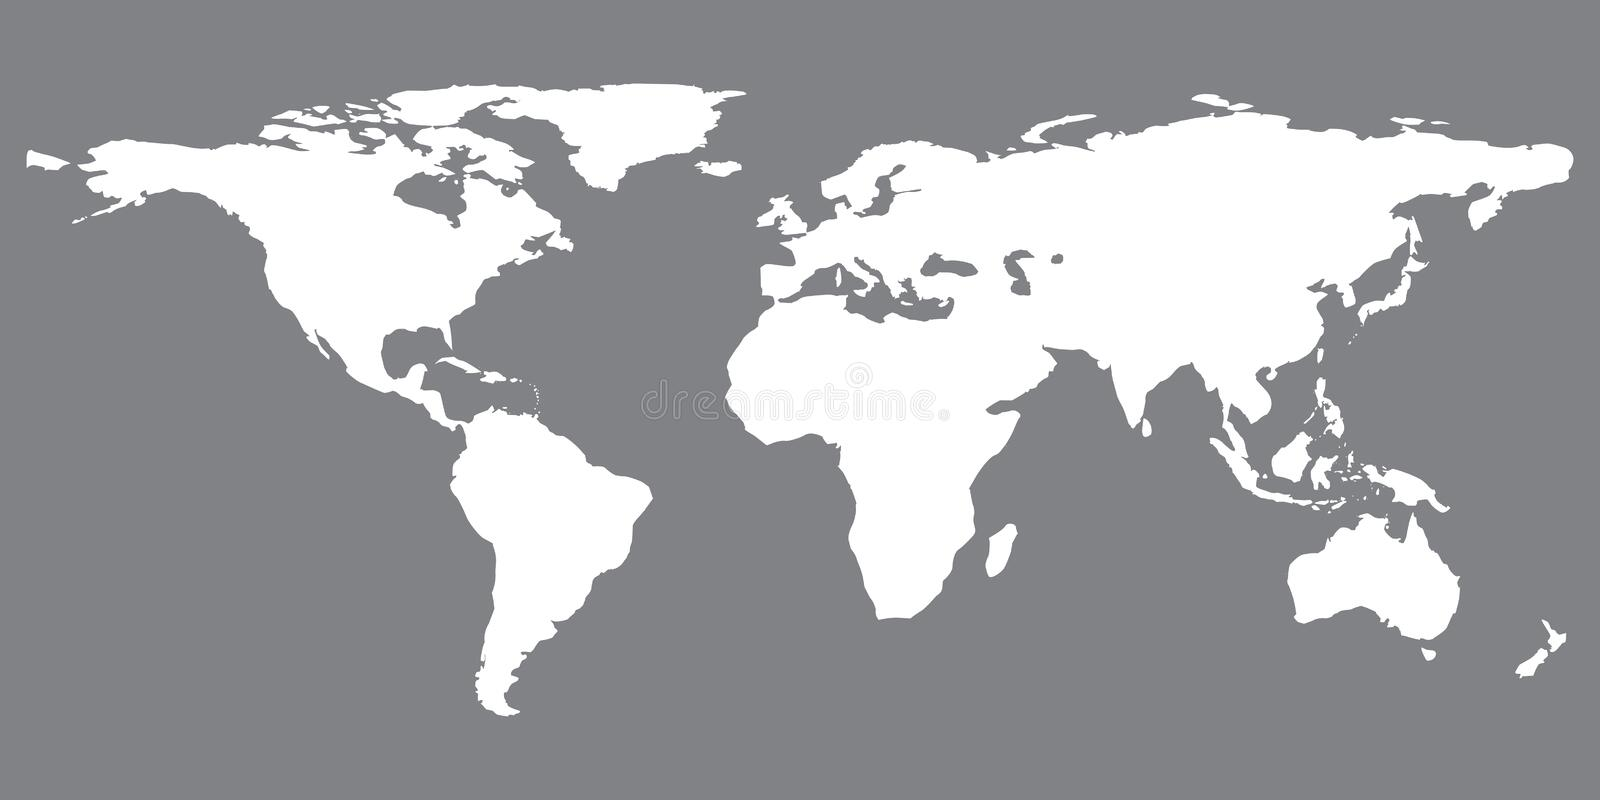 Gray similar world map world map blank world map world map flat download gray similar world map world map blank world map world map flat gumiabroncs Image collections